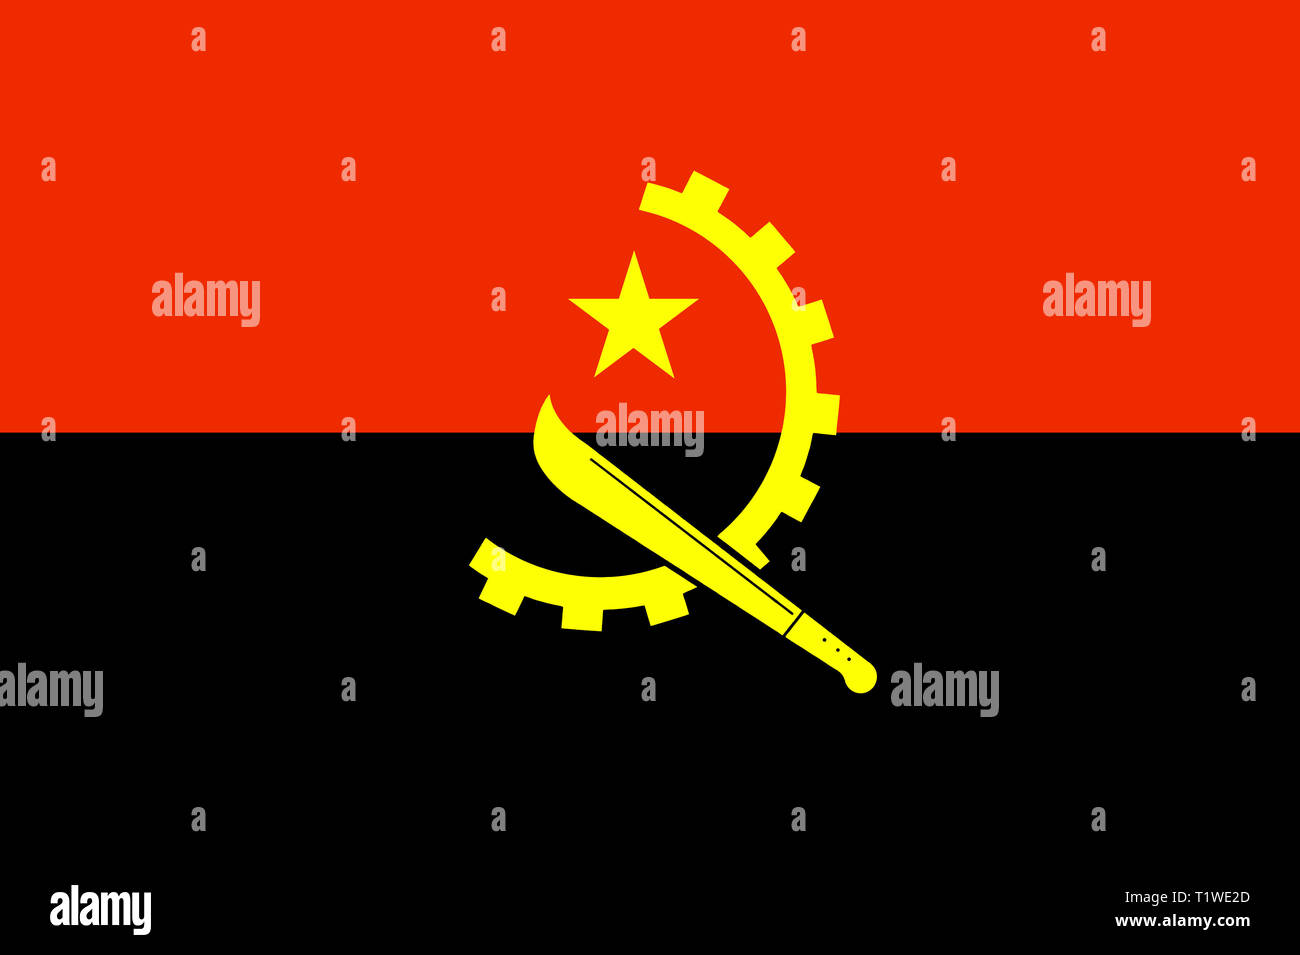 Republic of Angola in southern Africa national flag - Stock Image